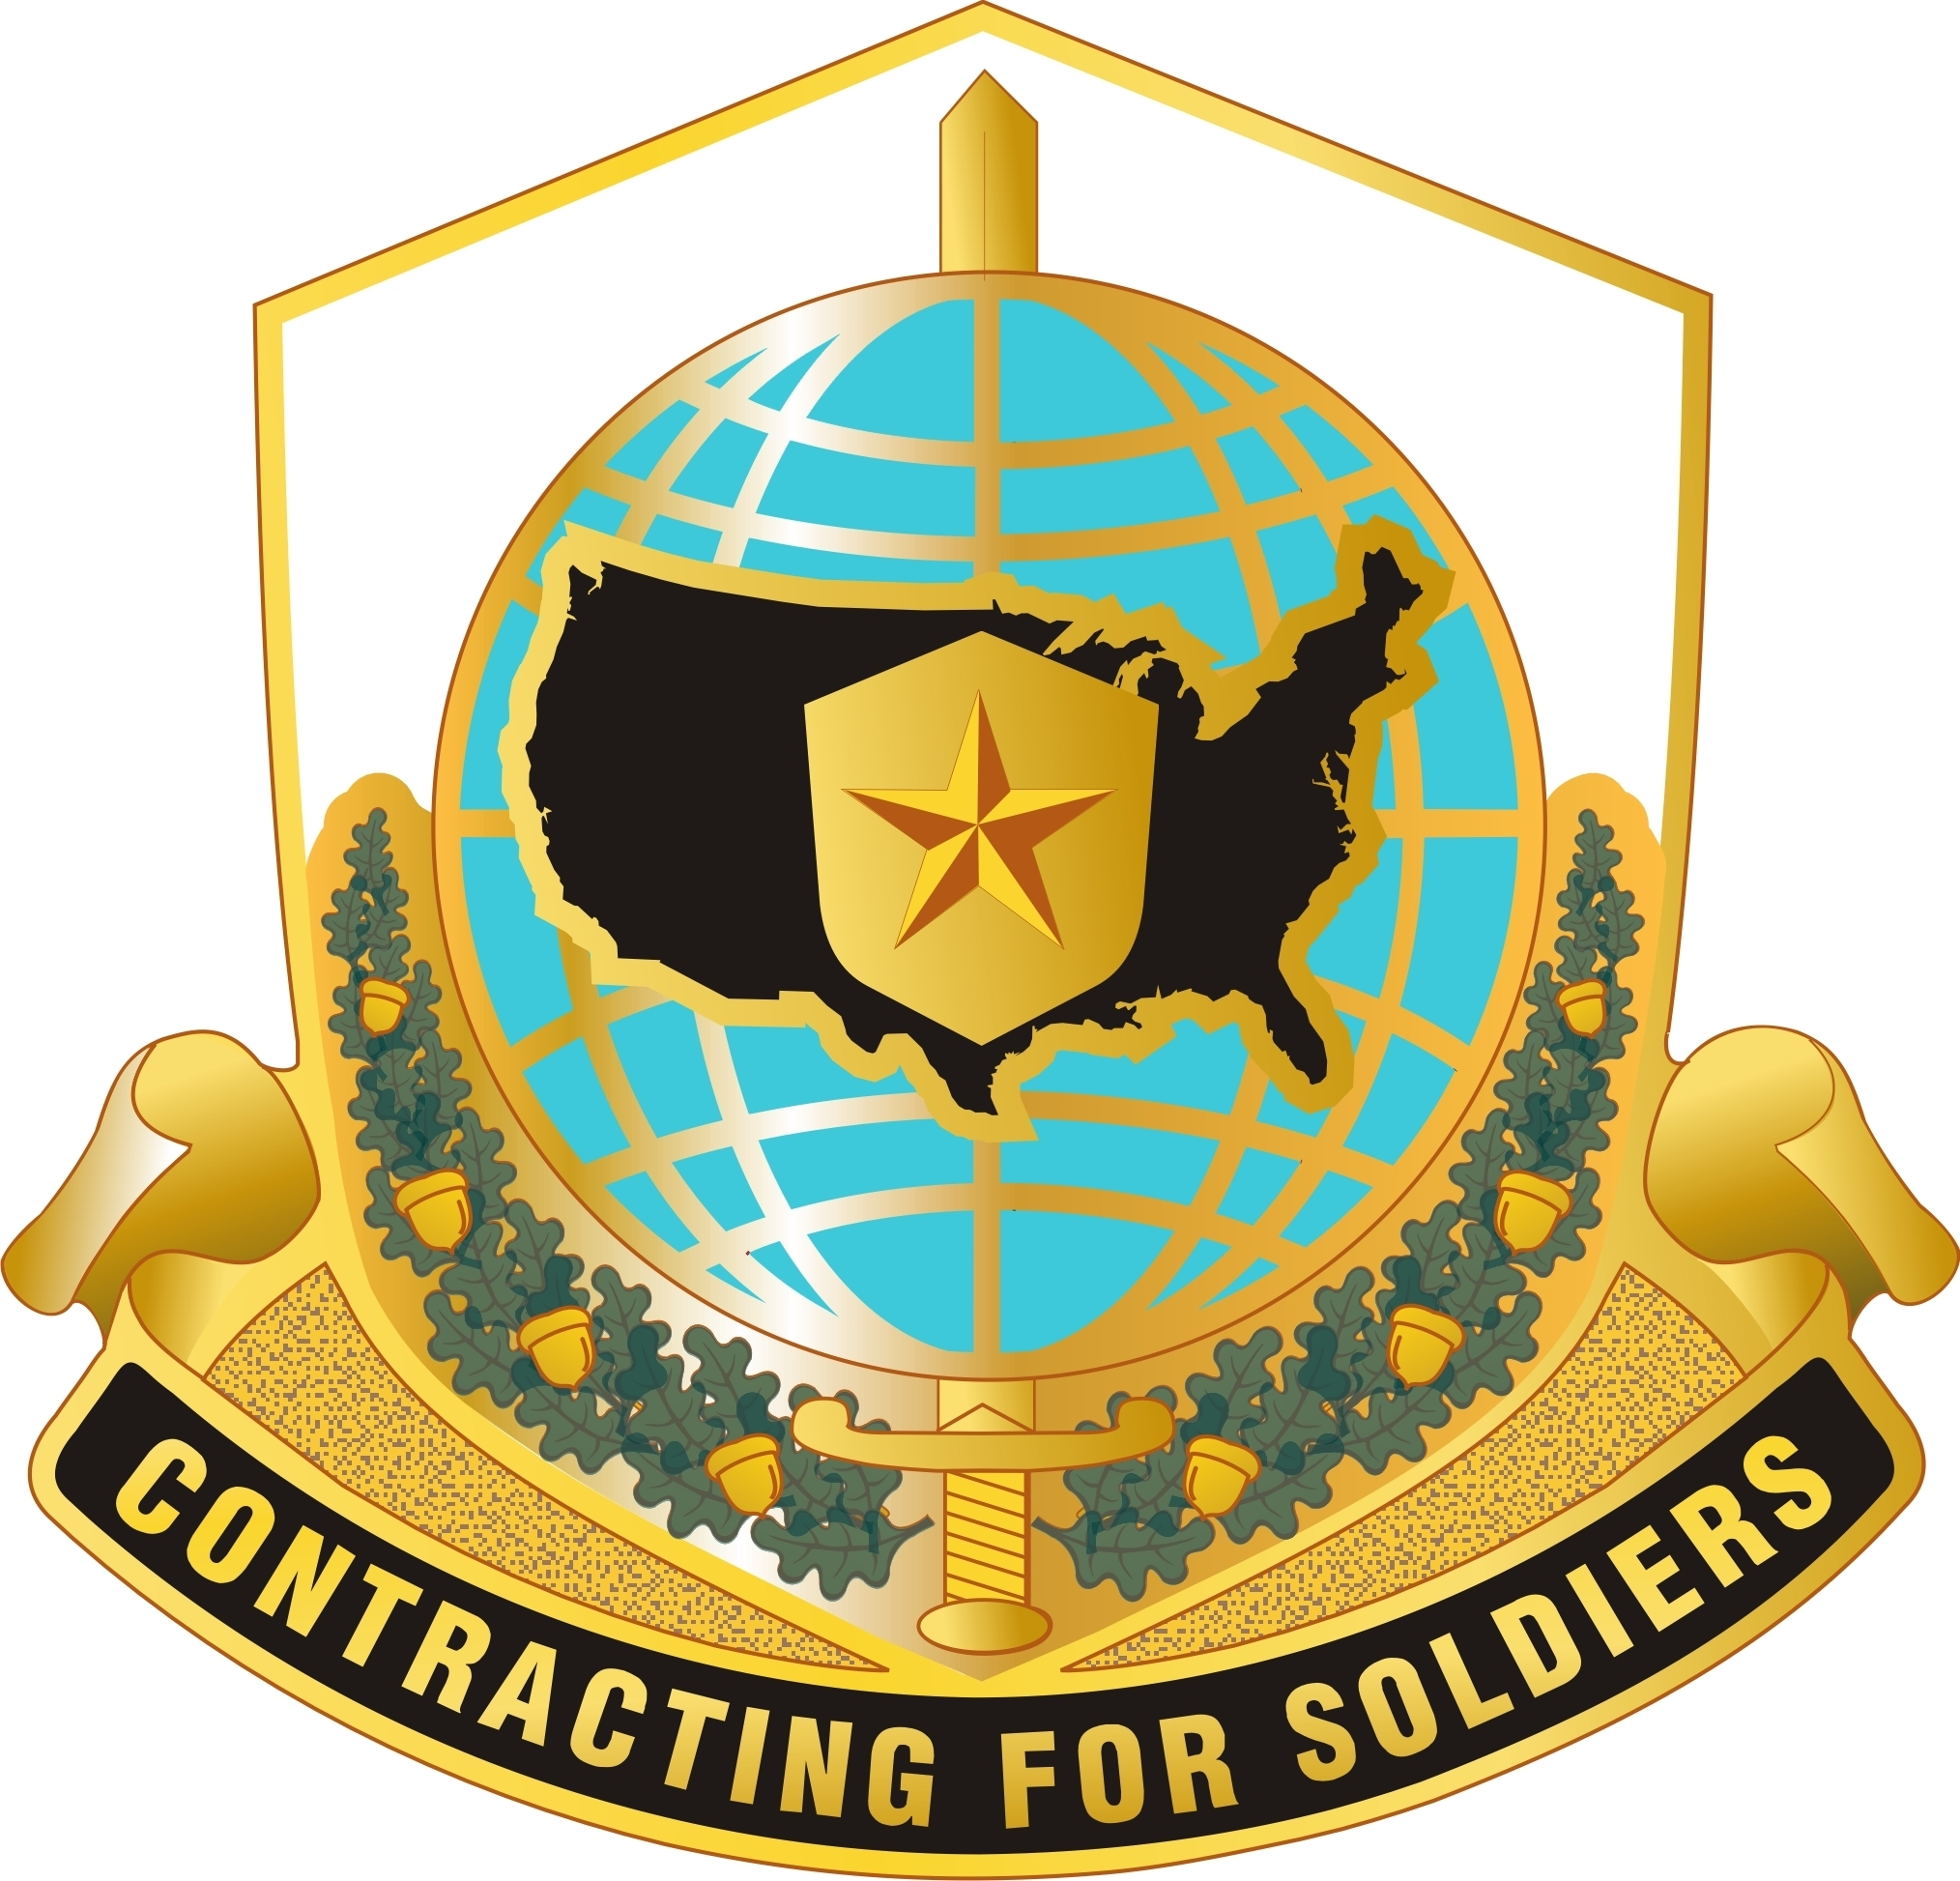 Soldiers clipart army commander Riley Contracting Fort for Photo